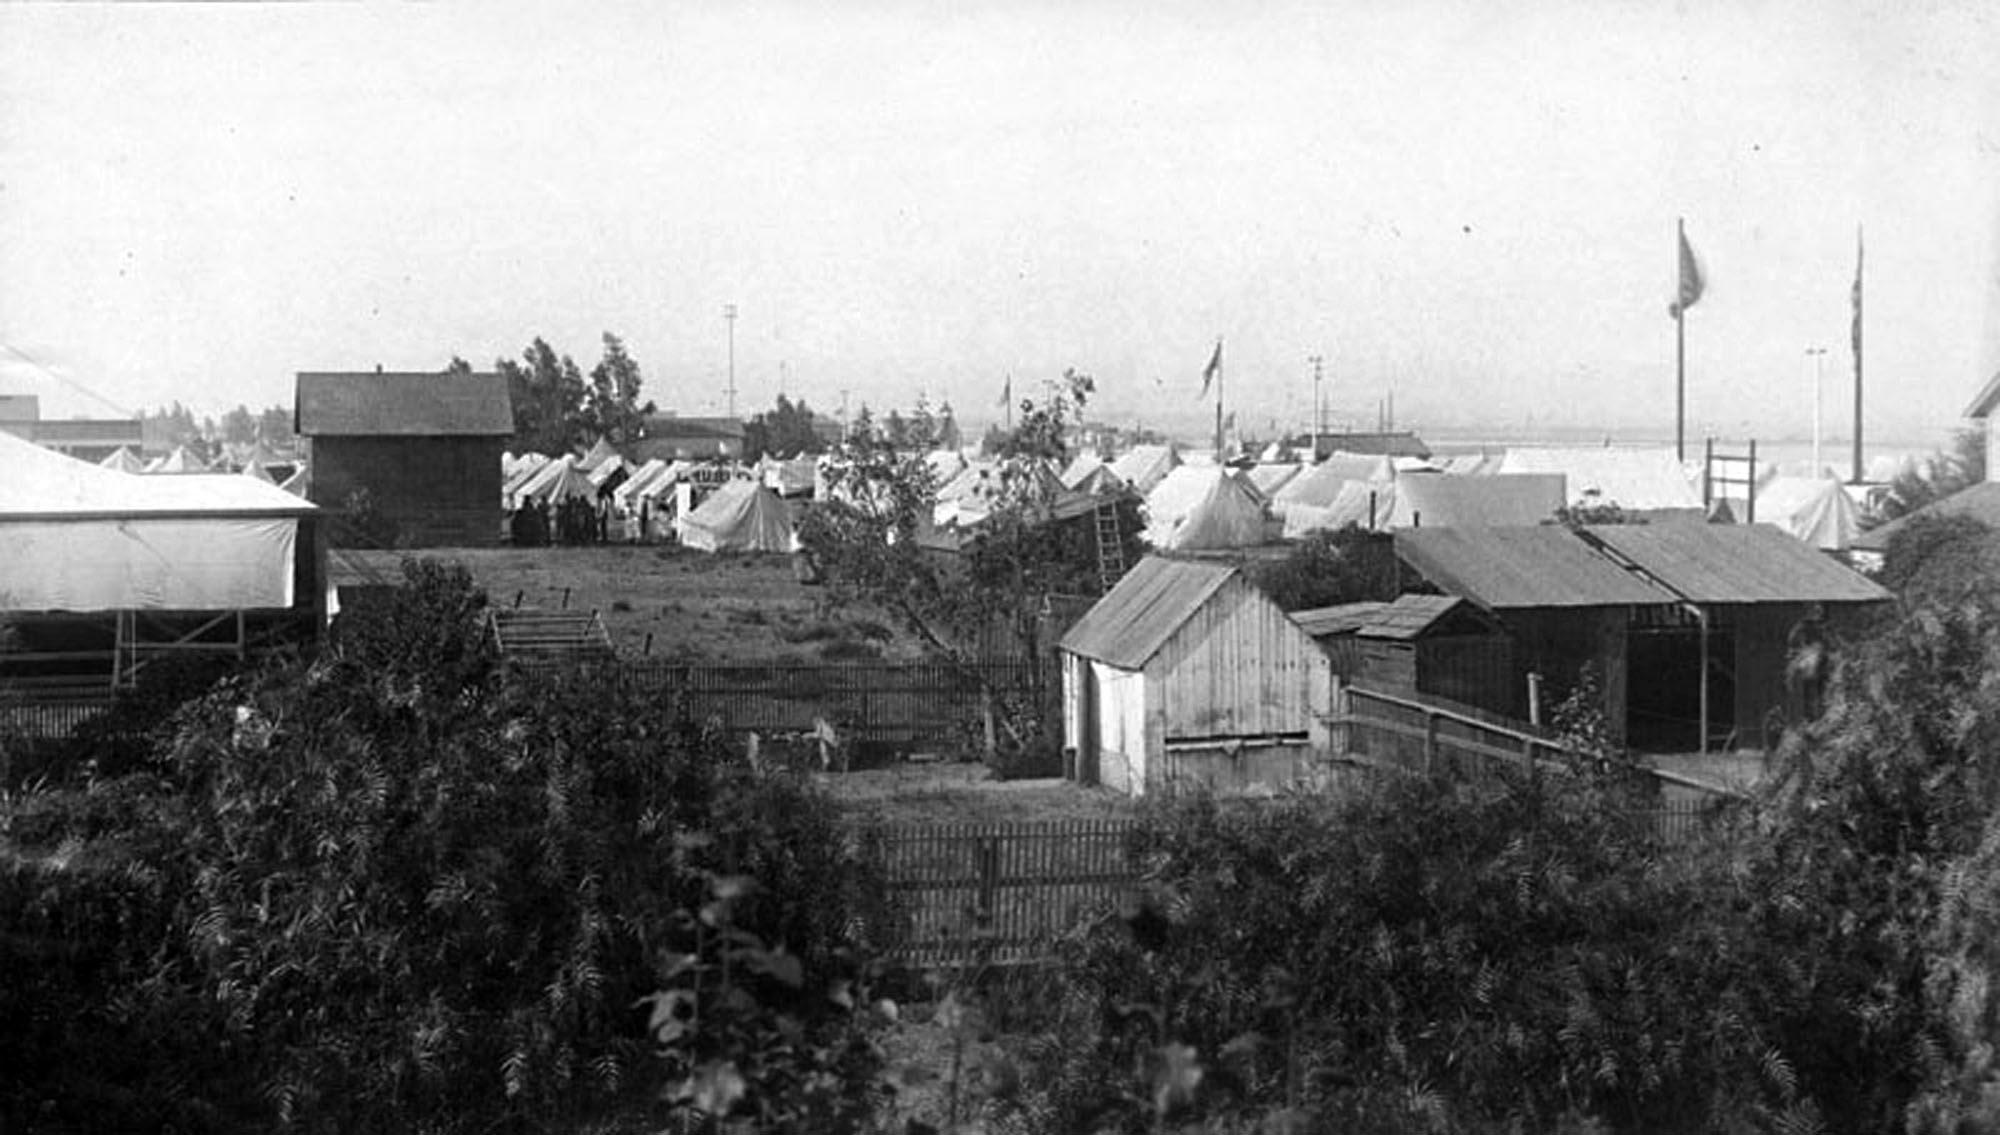 Tent encampment. Federal military units set up temporary encampments much like this one to suppress secessionists in Los Angeles and El Monte. Photograph courtesy of Security Pacific National Bank Collection, Los Angeles Public Library